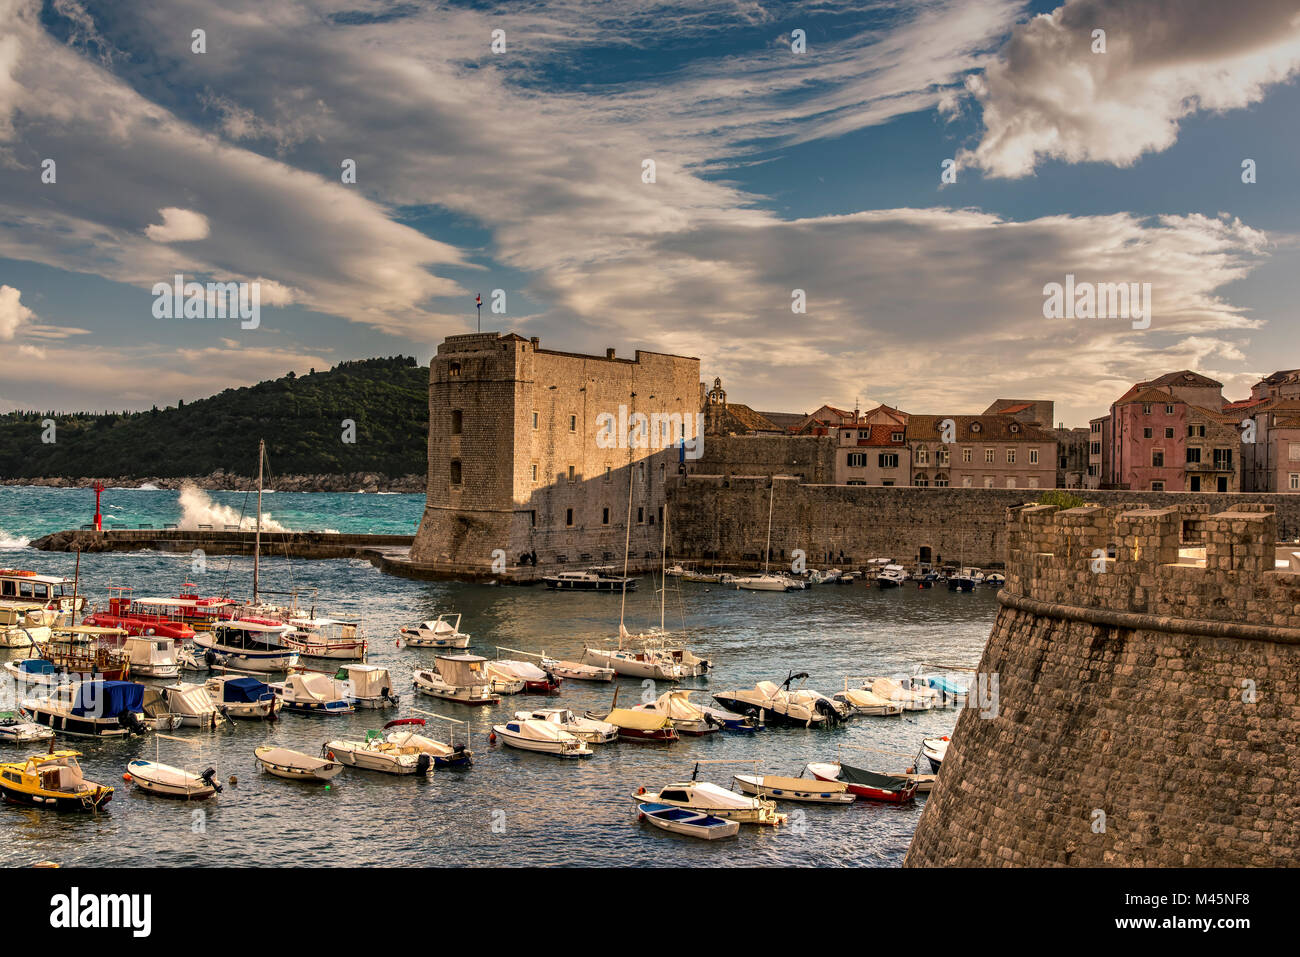 Port and city walls at sunset, Dubrovnik, Croatia - Stock Image